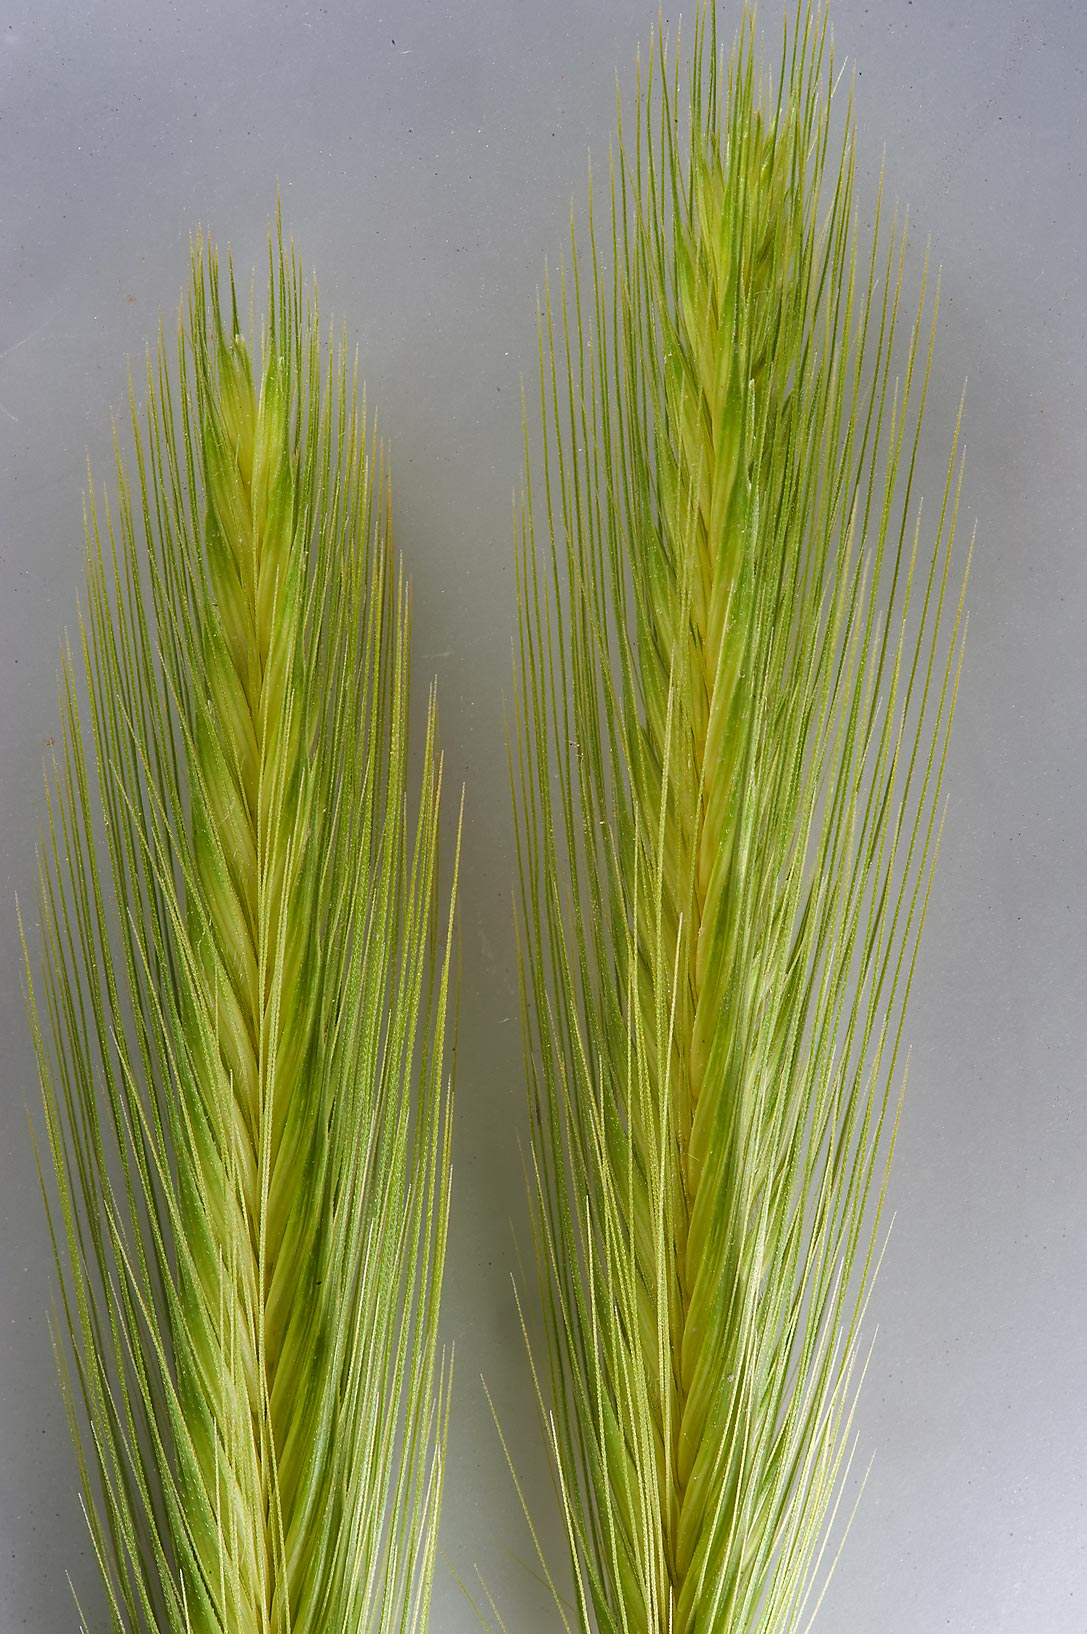 Spikes of grass false barley (Hordeum murinum) in a depression in Al Harrarah. Qatar